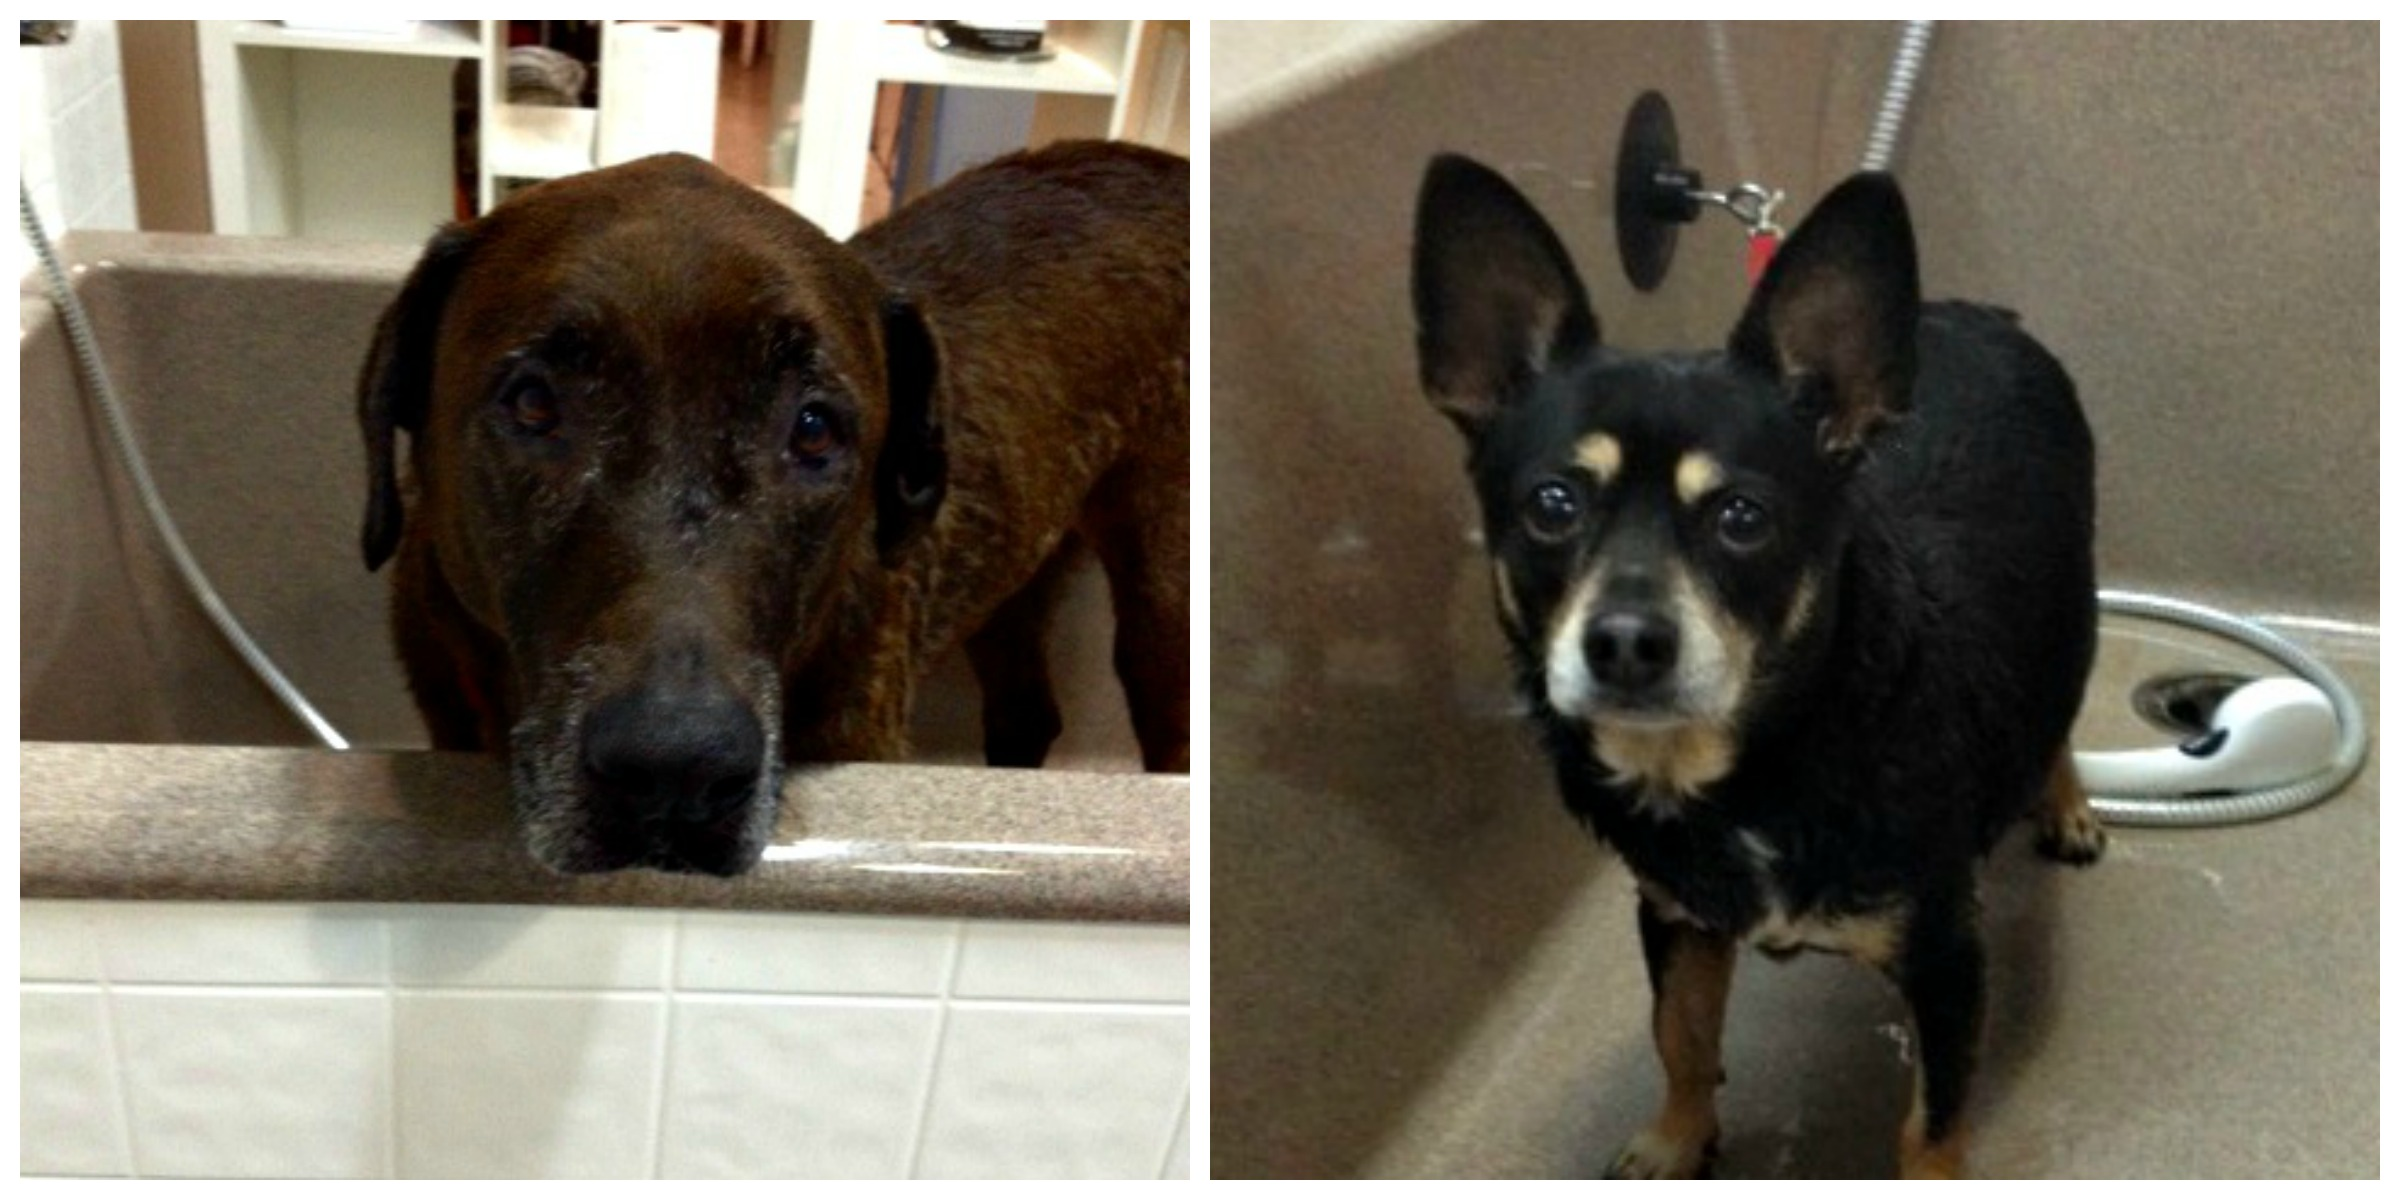 Abe and Chico in the bath!